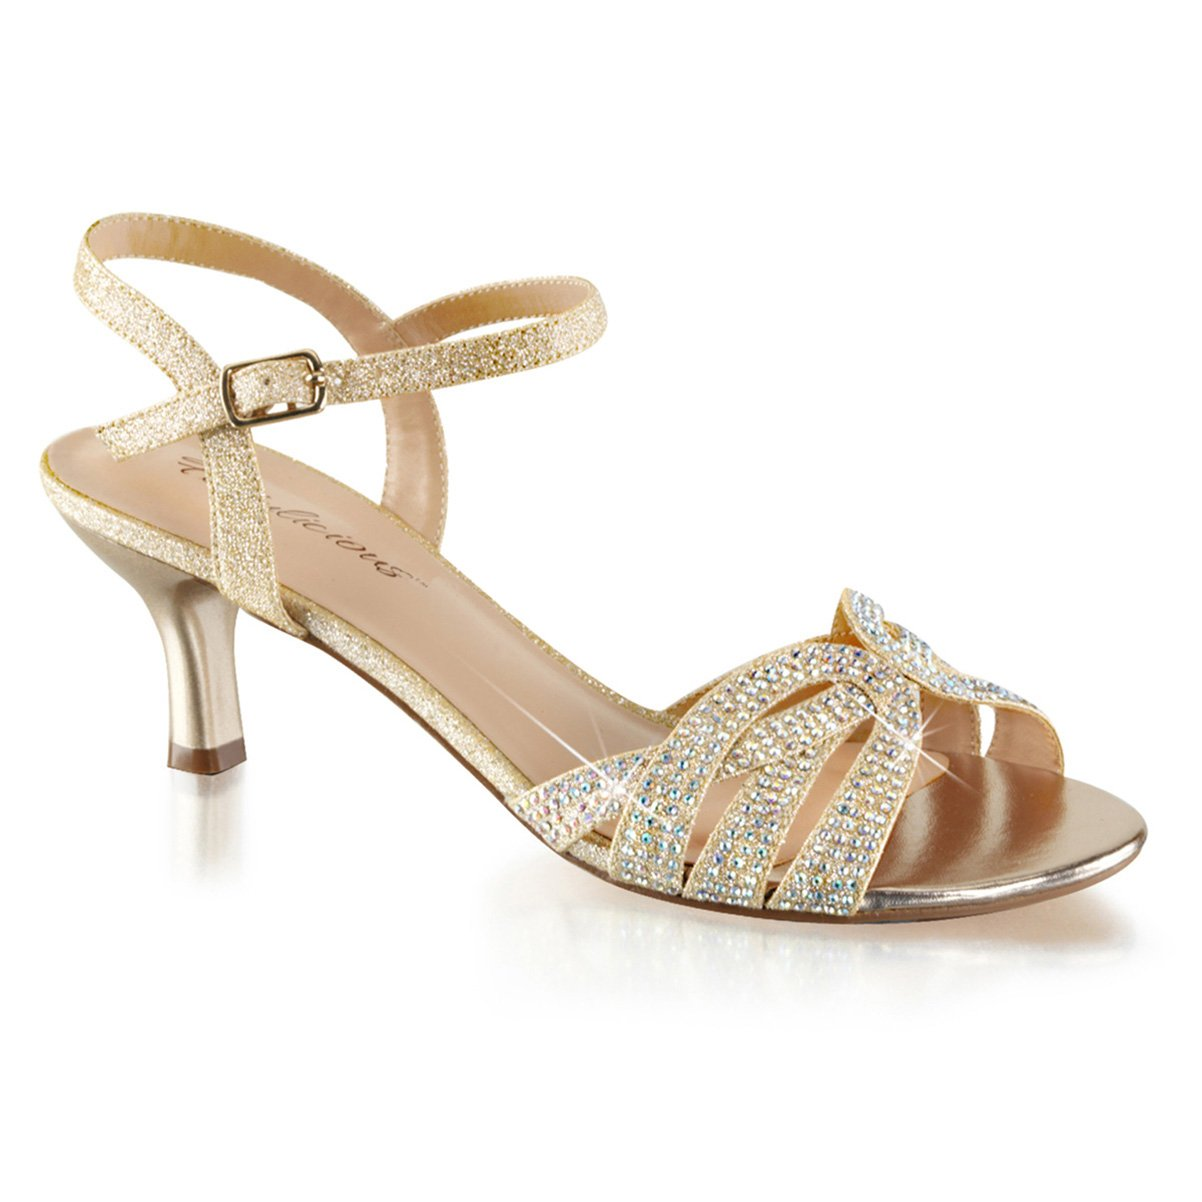 300a15aacd01b Amazon.com | Summitfashions Womens Kitten Heel Sandals Sparkly Nude ...